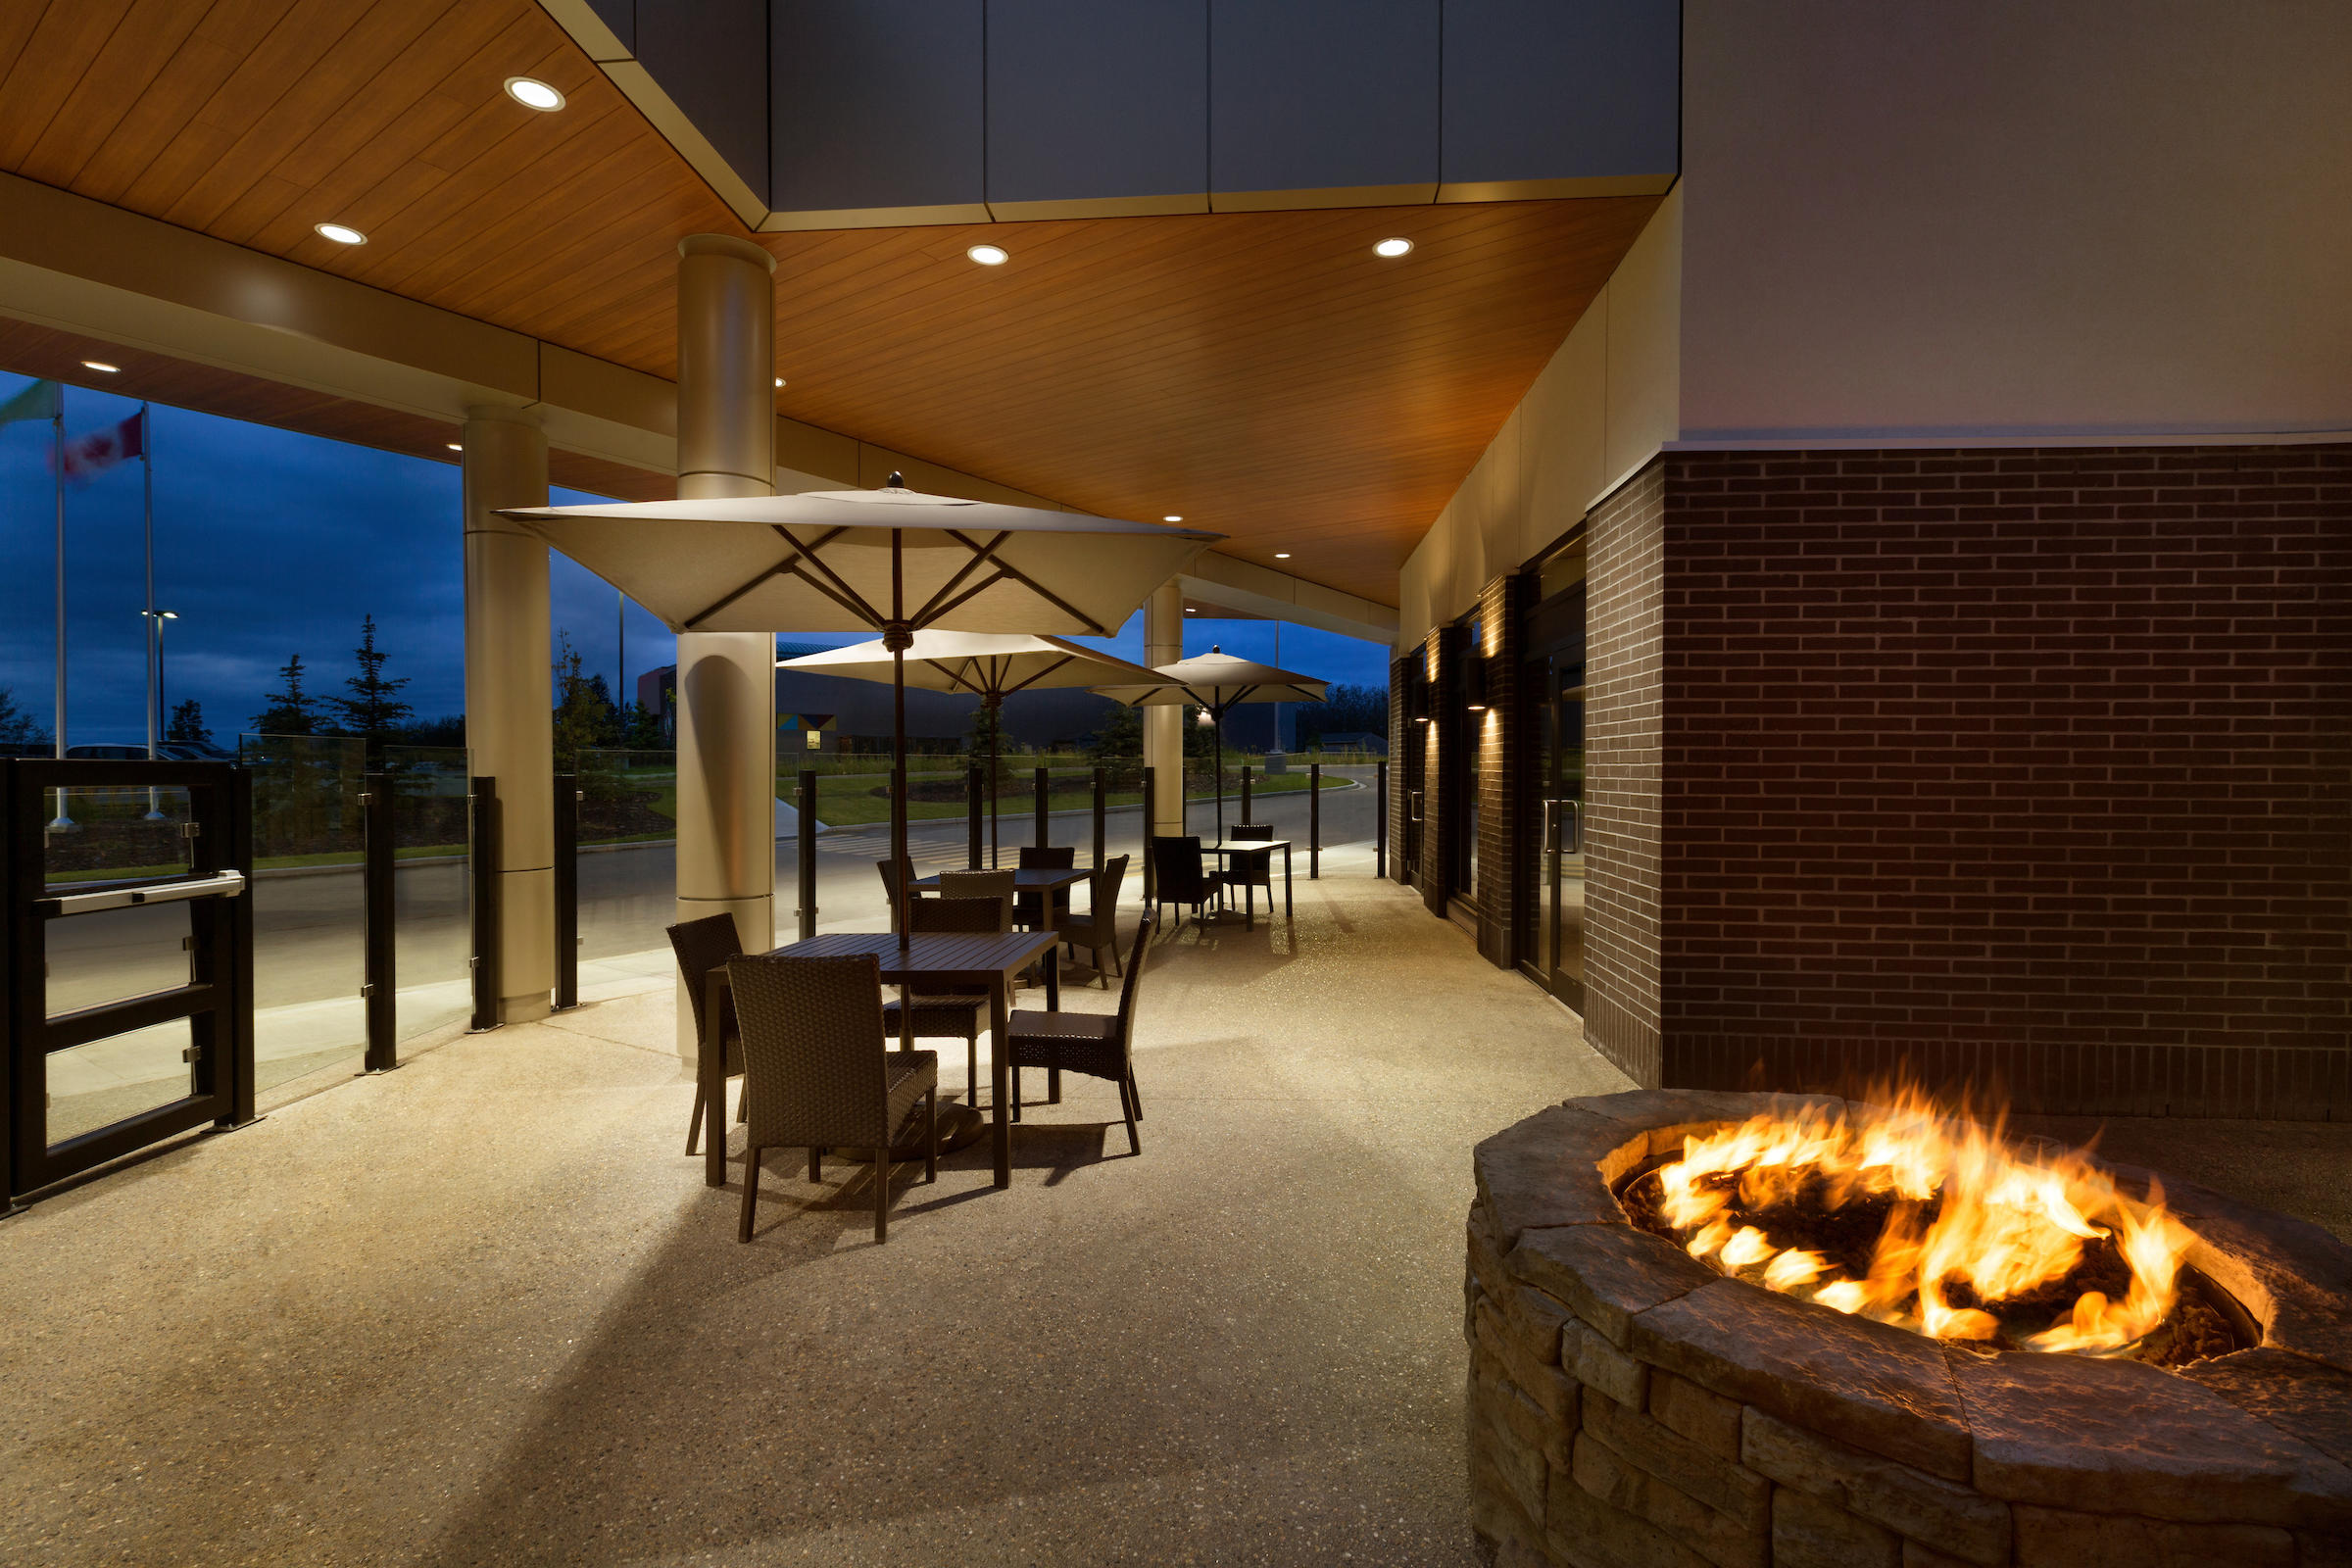 Outdoor Terrace and Fire Pit Courtyard by Marriott Cold Lake Cold Lake (780)594-0989